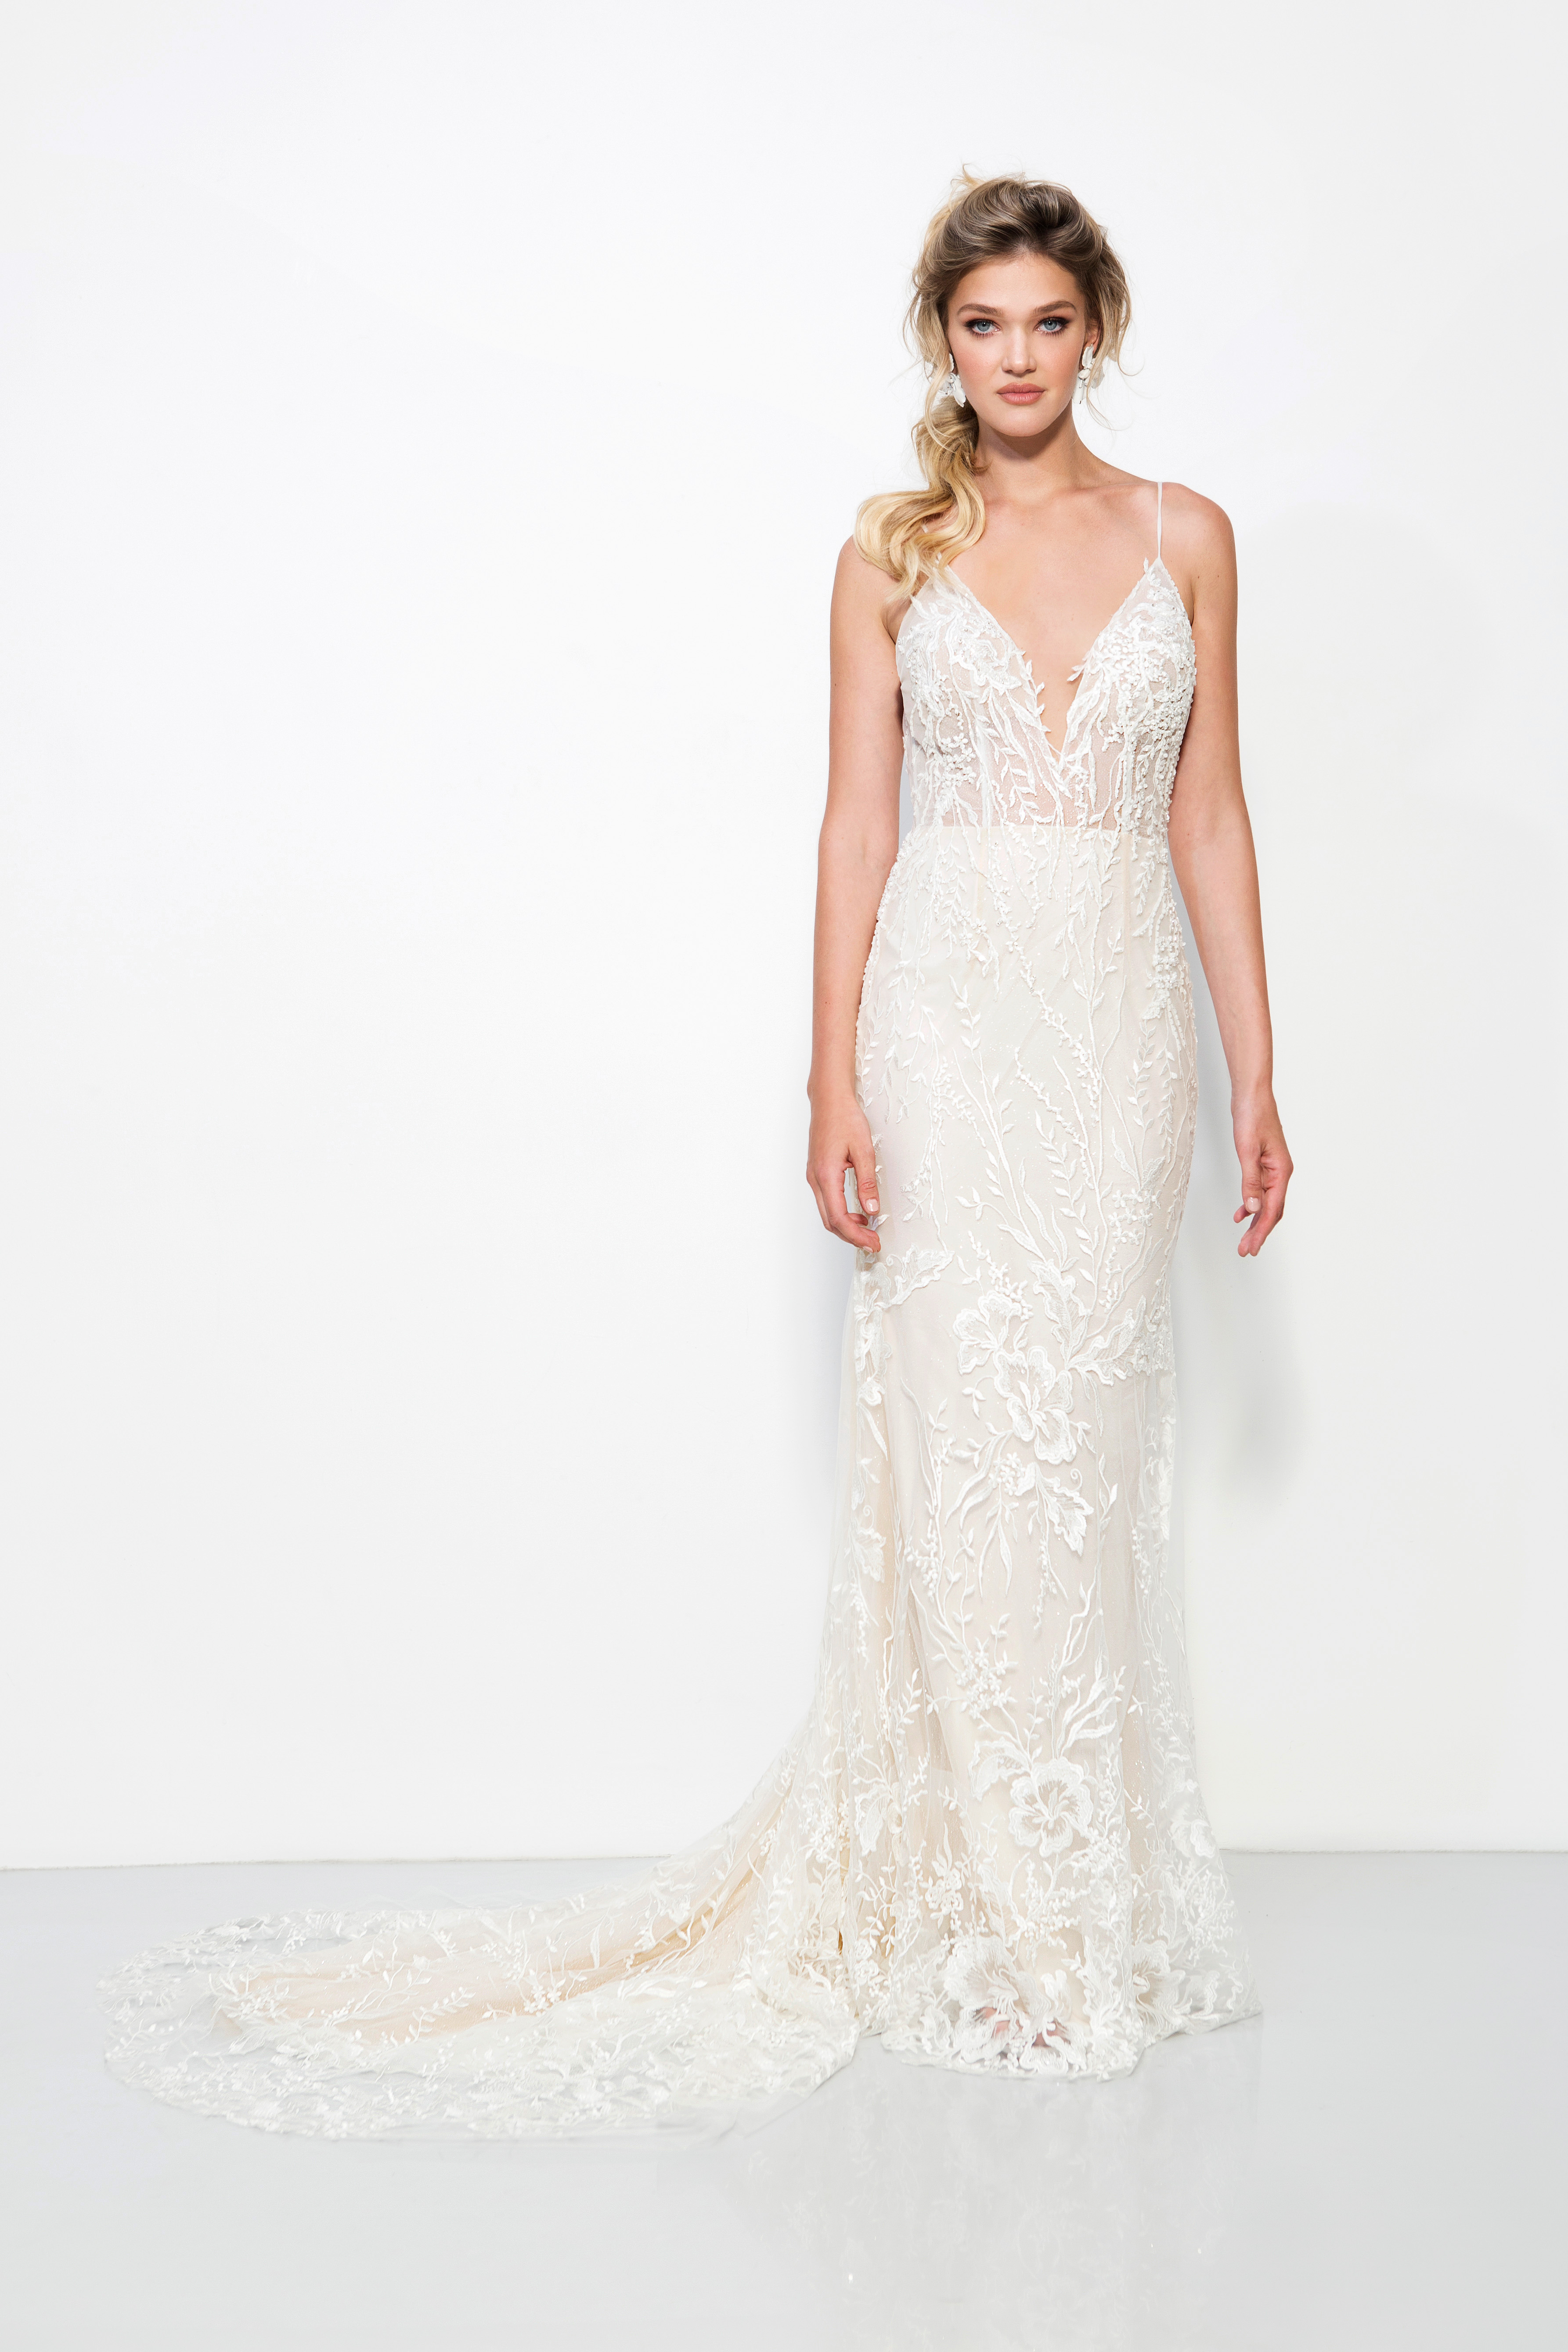 lavish by yaniv persy wedding dress spring 2019 lace spaghetti strap deep v